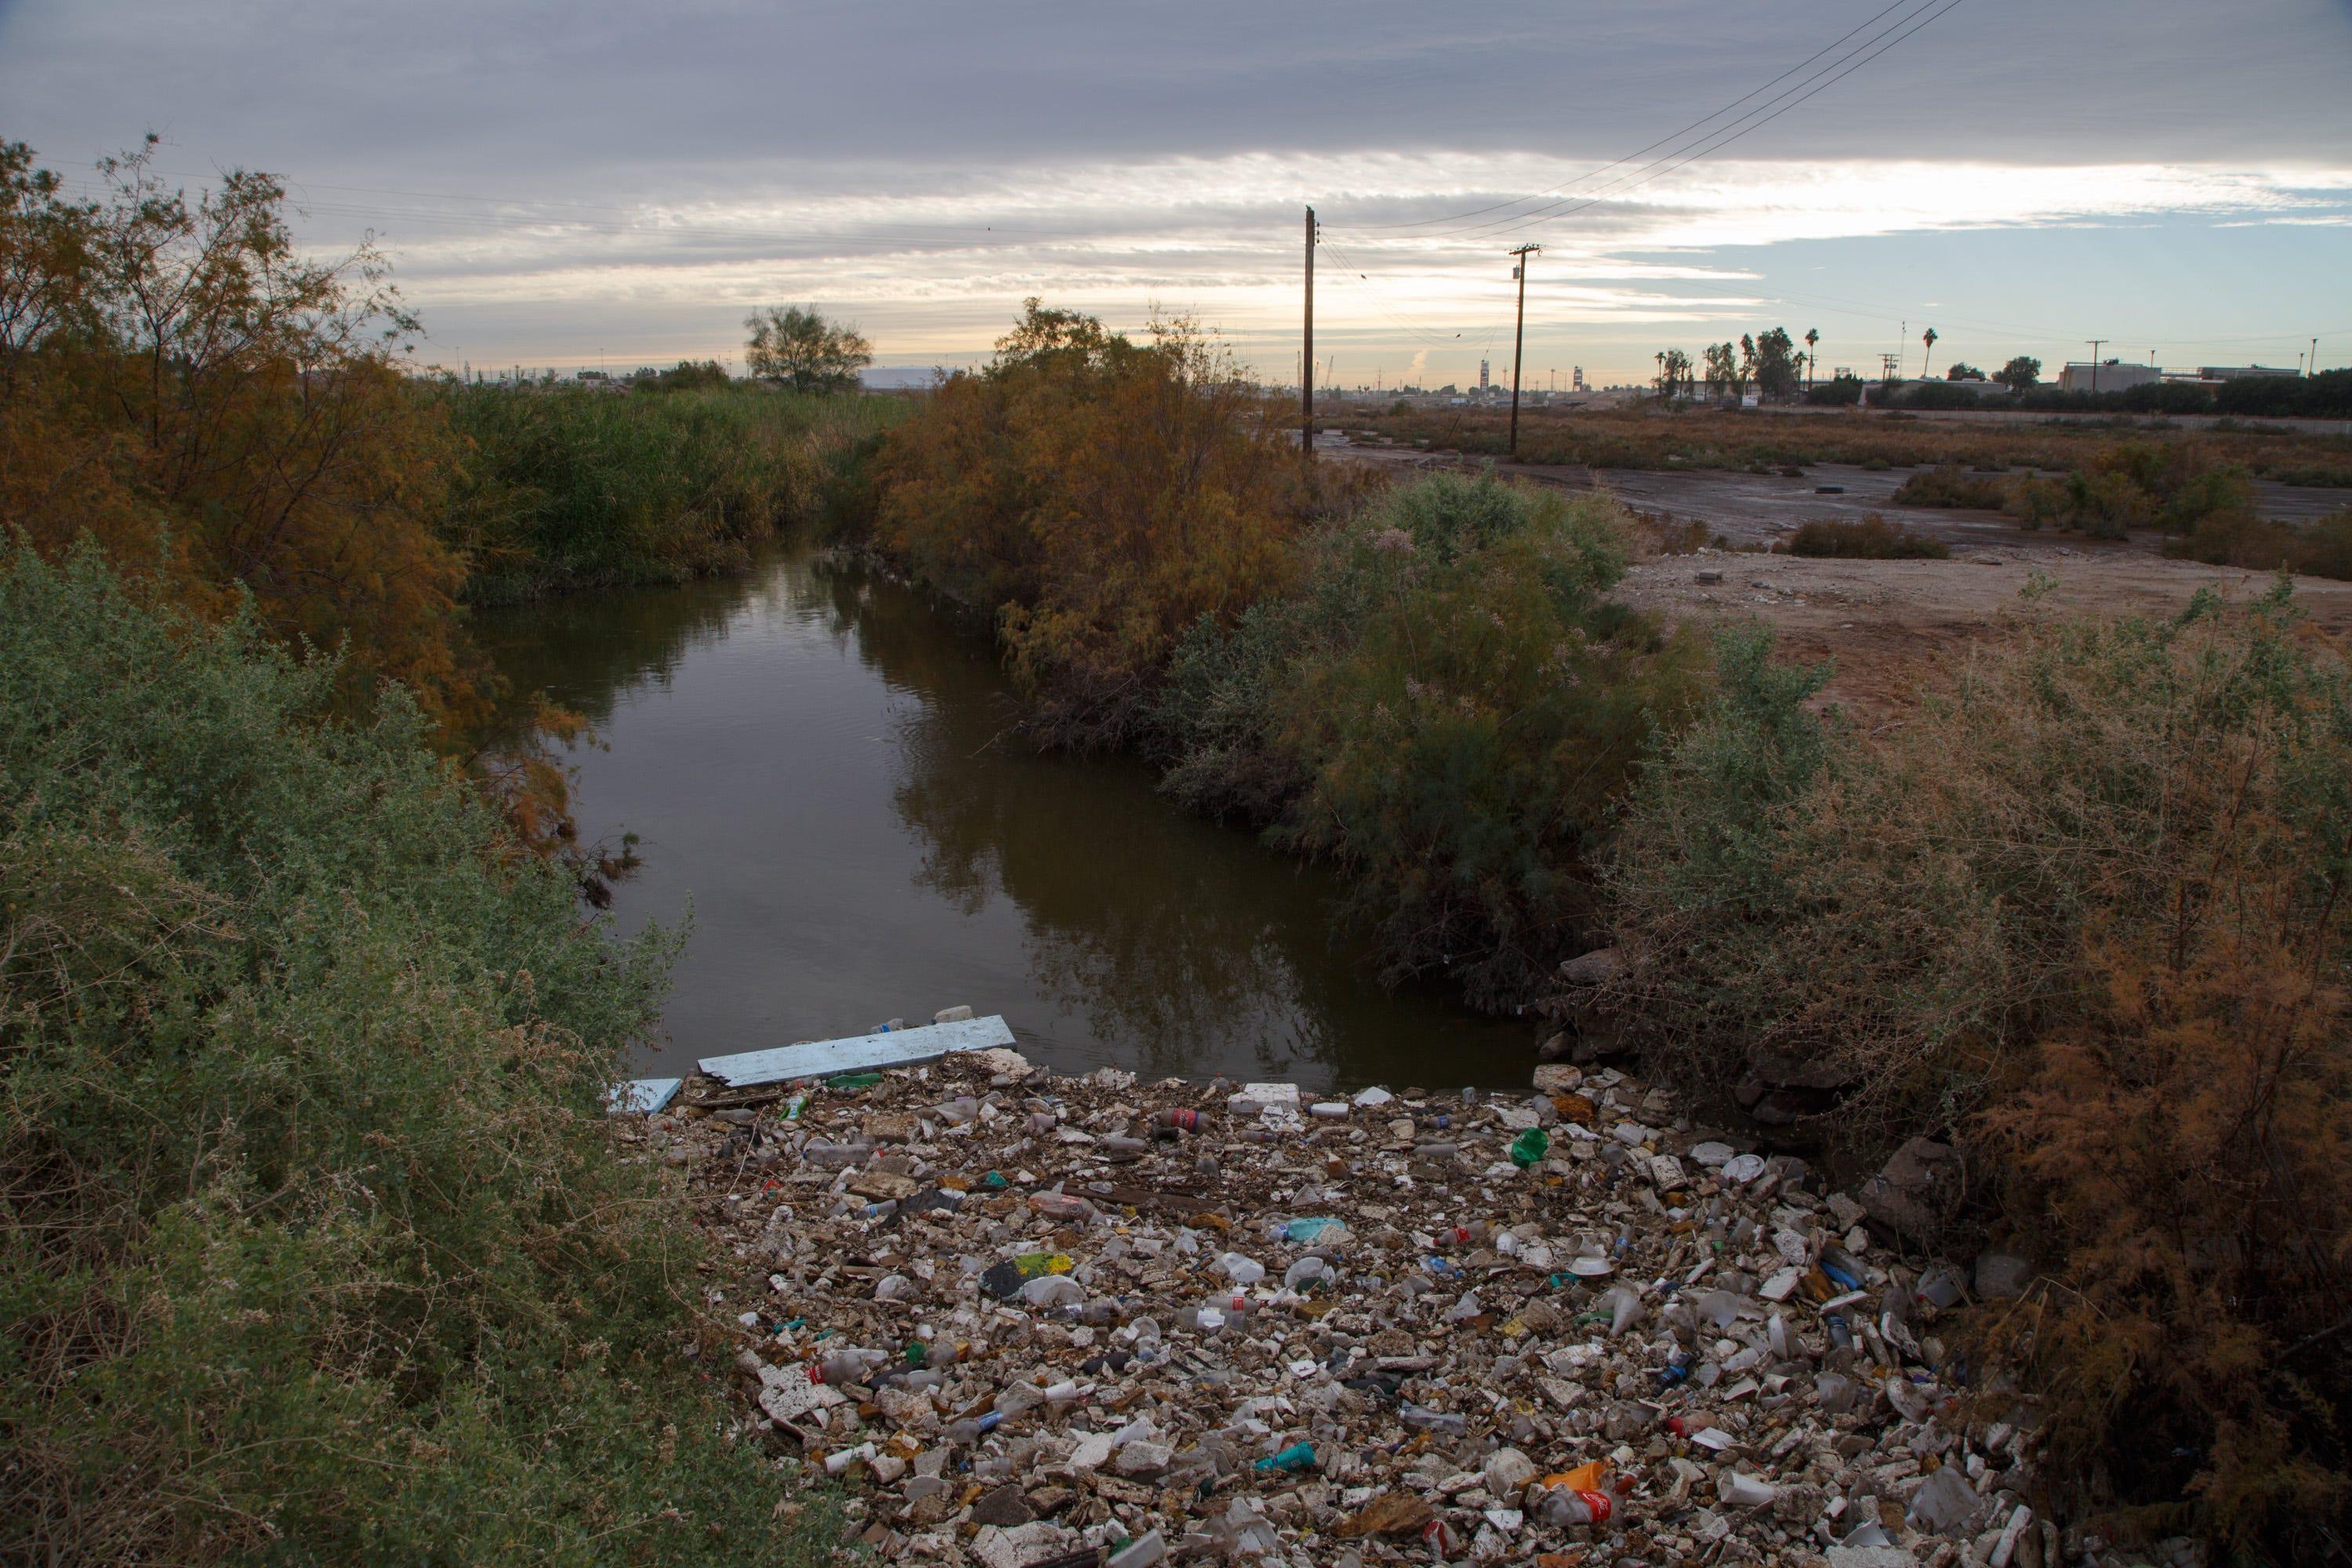 Floating trash collects in the New River near the border in Calexico.